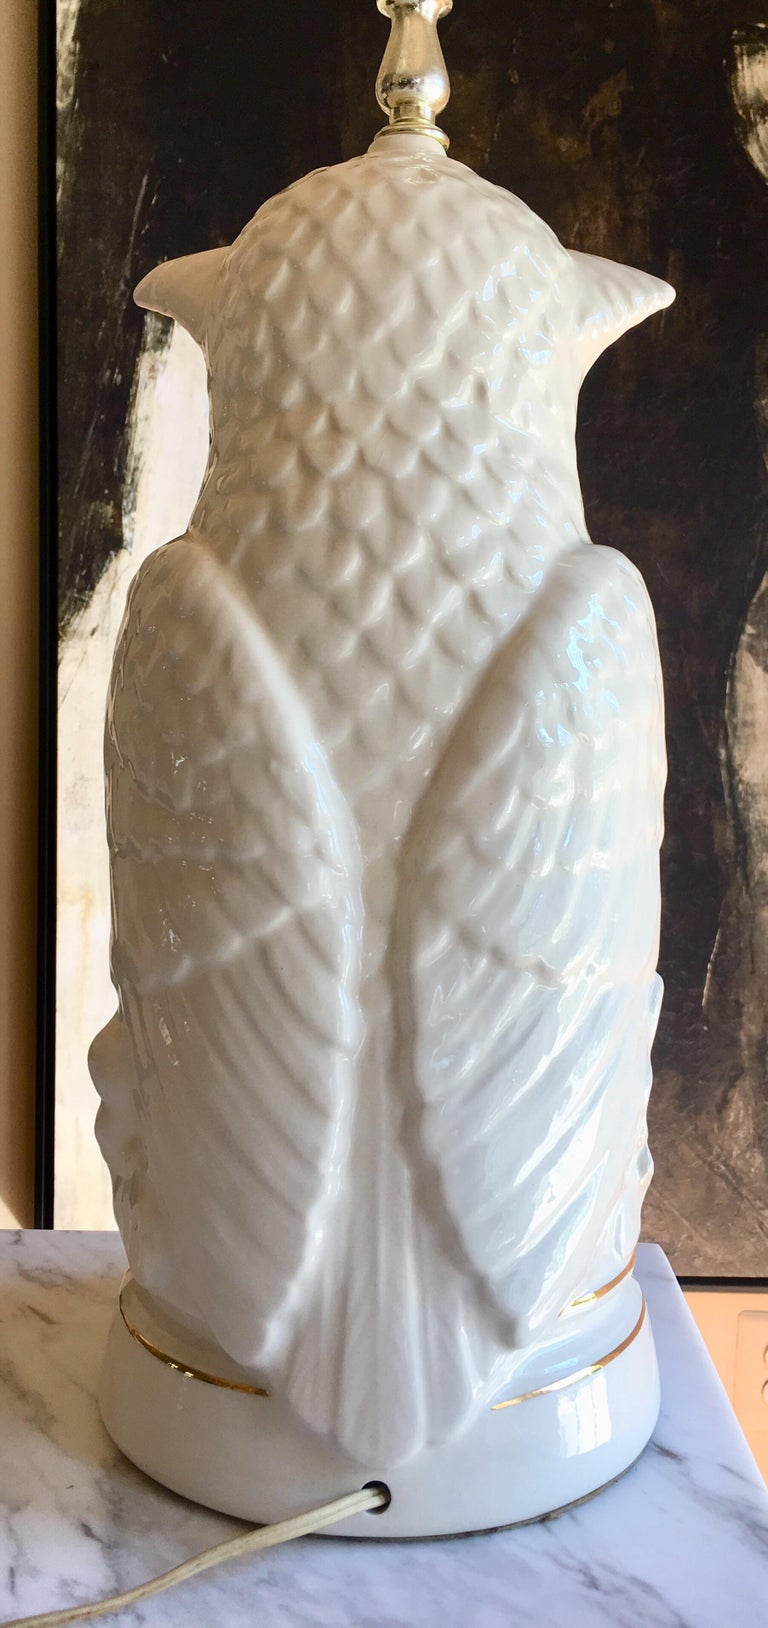 Late 20th Century Mid-Century Modern Sculptural Owl Table Lamp